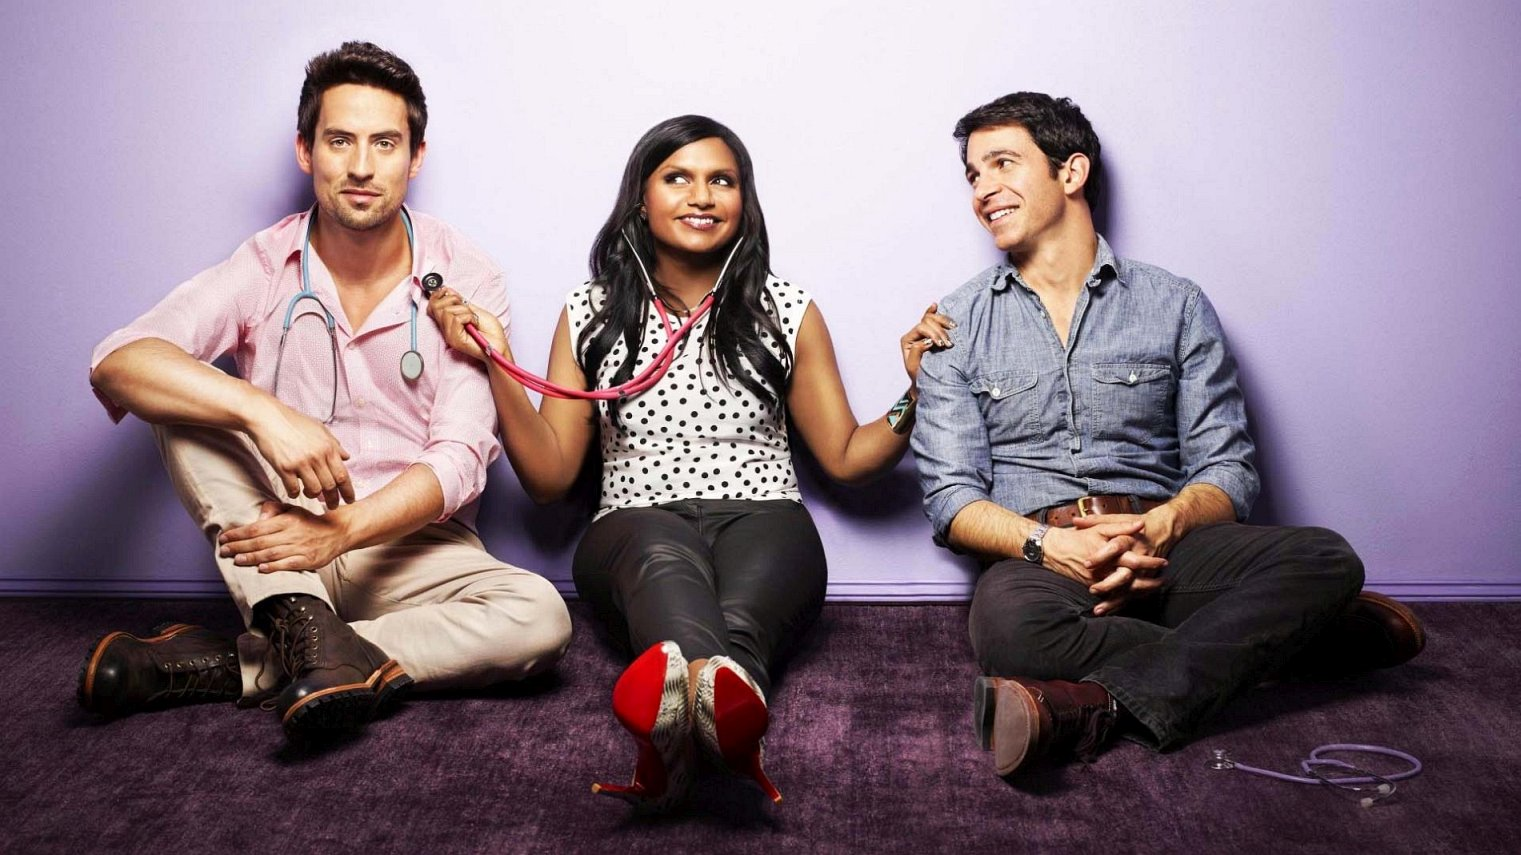 The Mindy Project season 6 episode 9 watch online